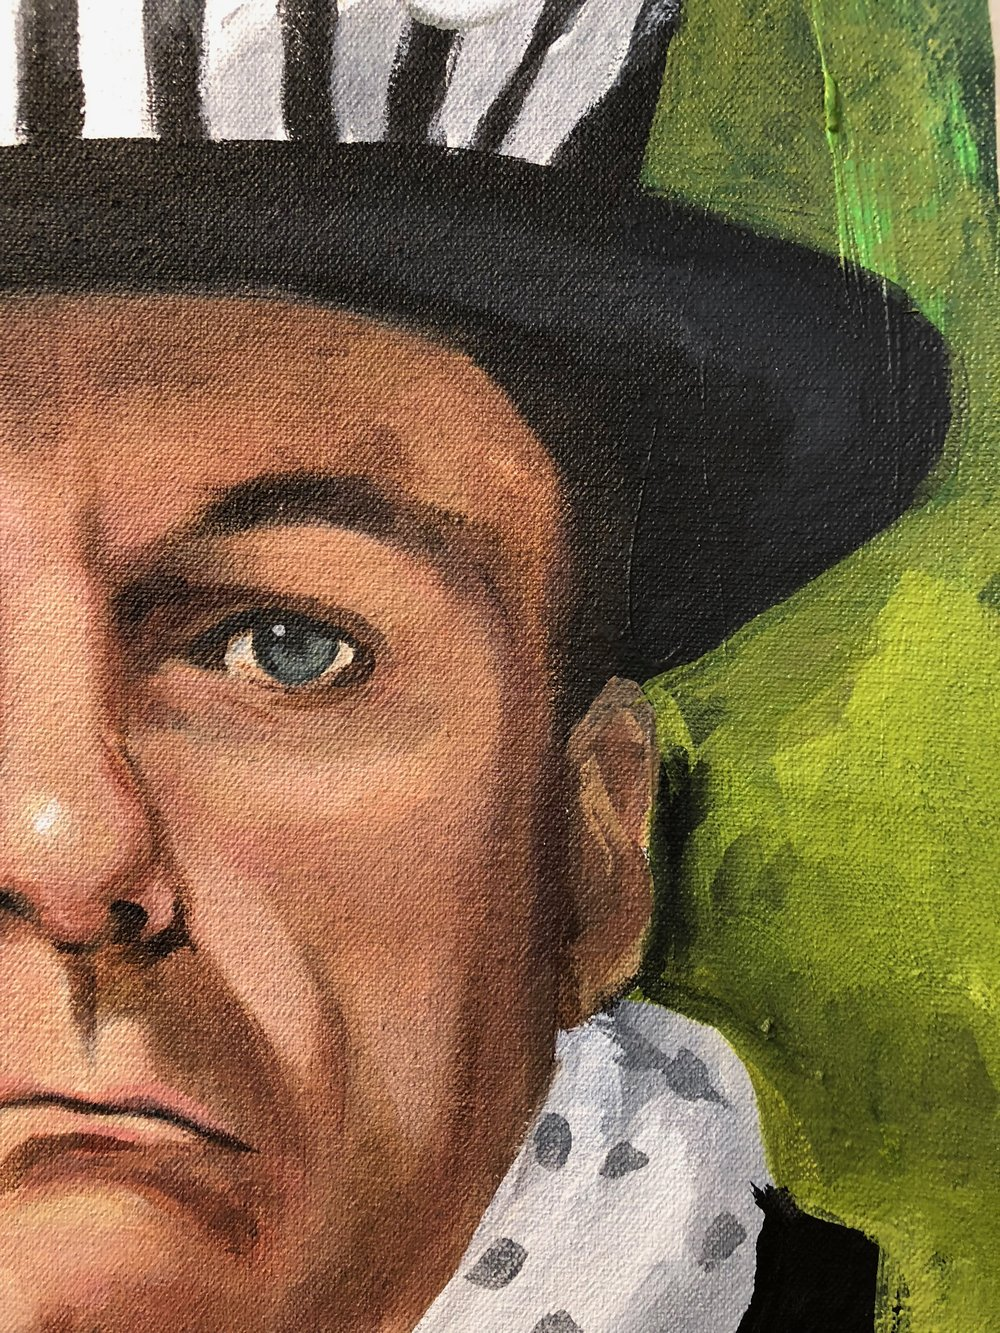 Detail of Mad Hatter